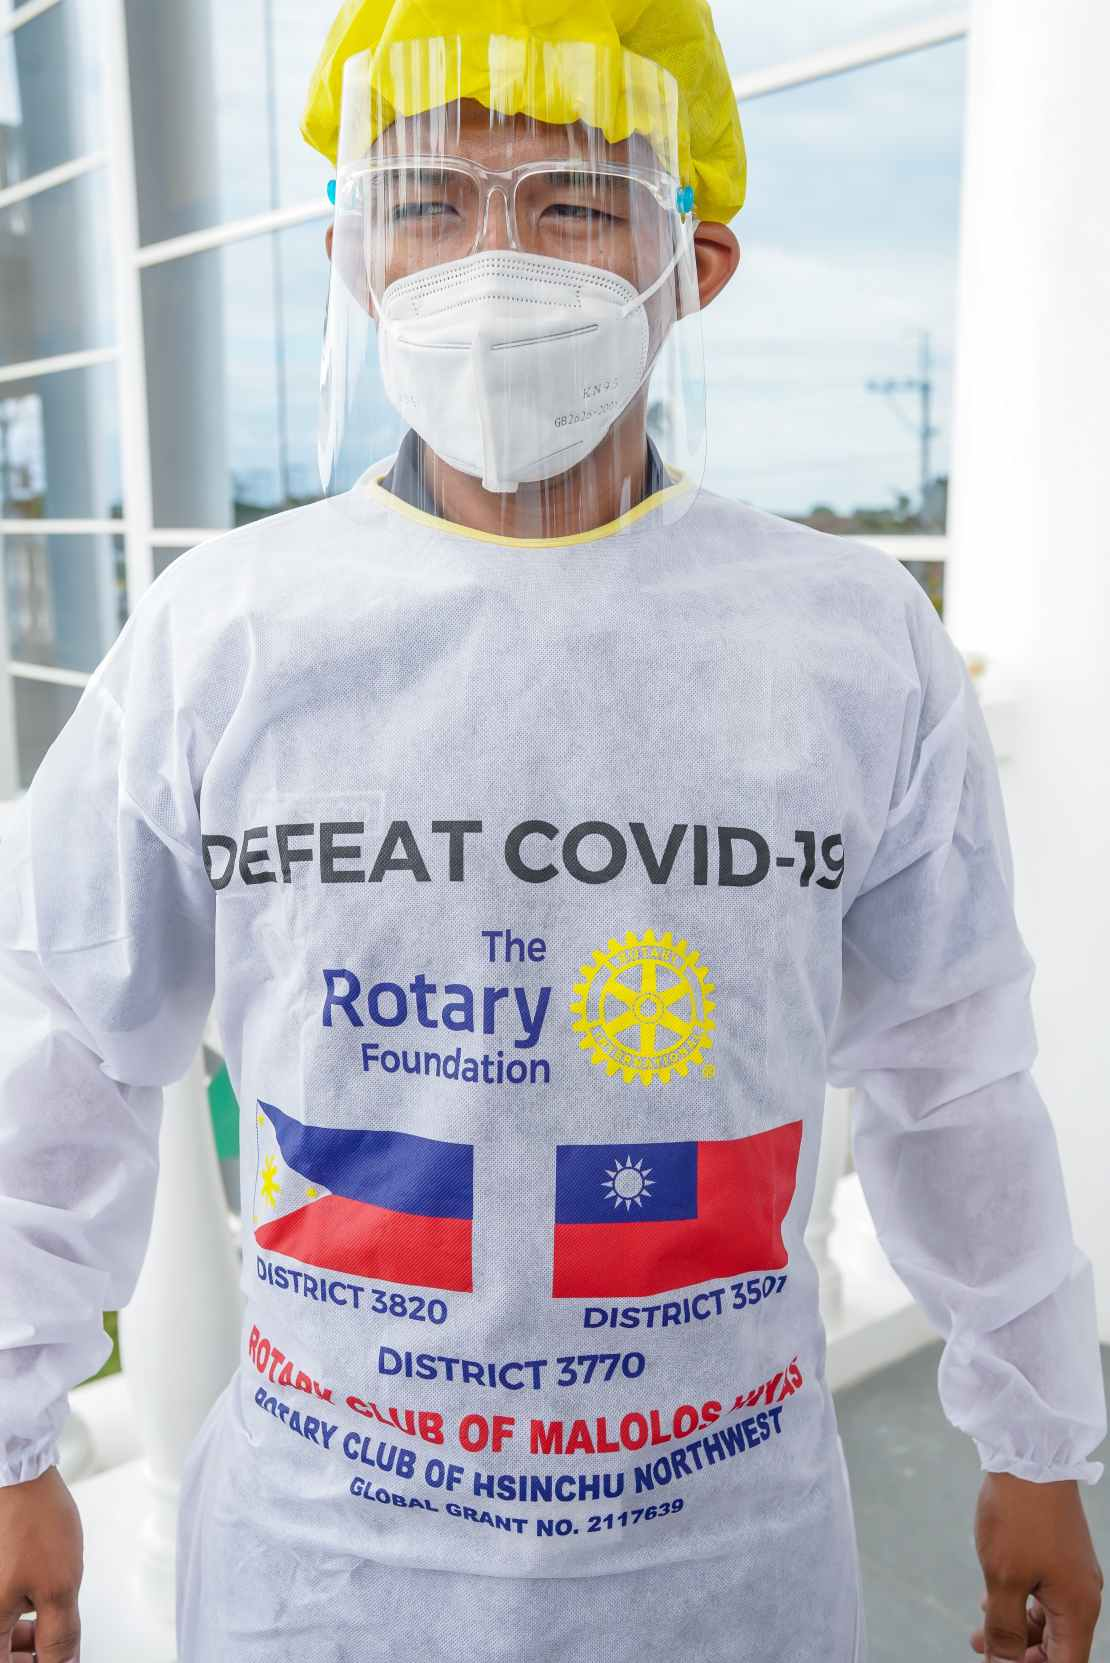 Rotary Club of Malolos Hiyas donates PhP1.5M worth of COVID Test Booths, Antigen Swab Kits, and PPEs to City of Malolos 5